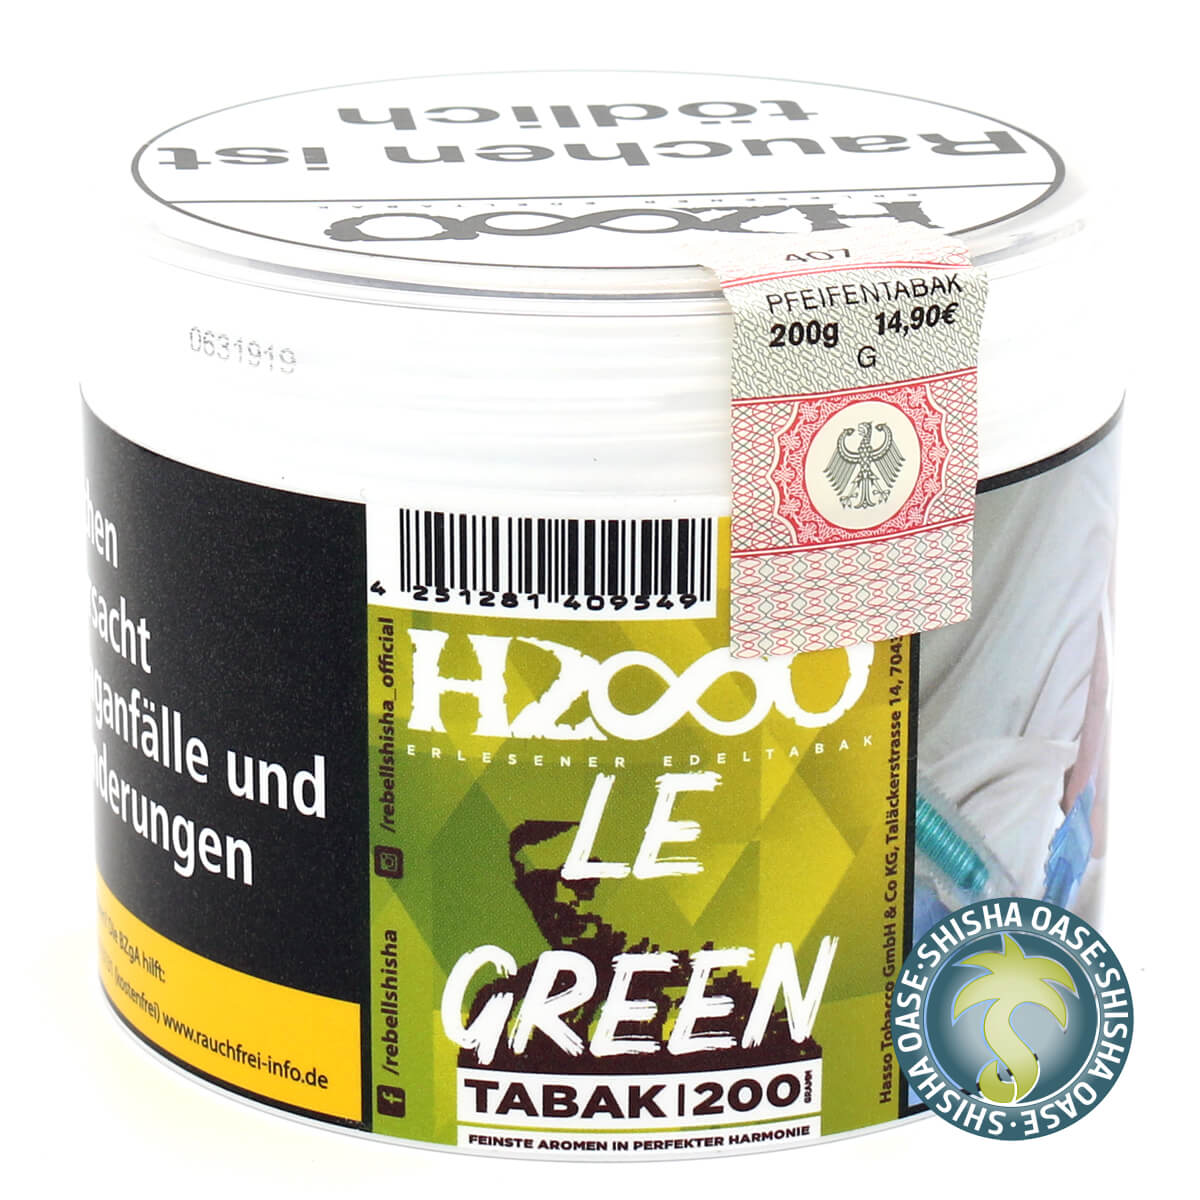 Hasso Tabak - Classic Line 200g - Le Green